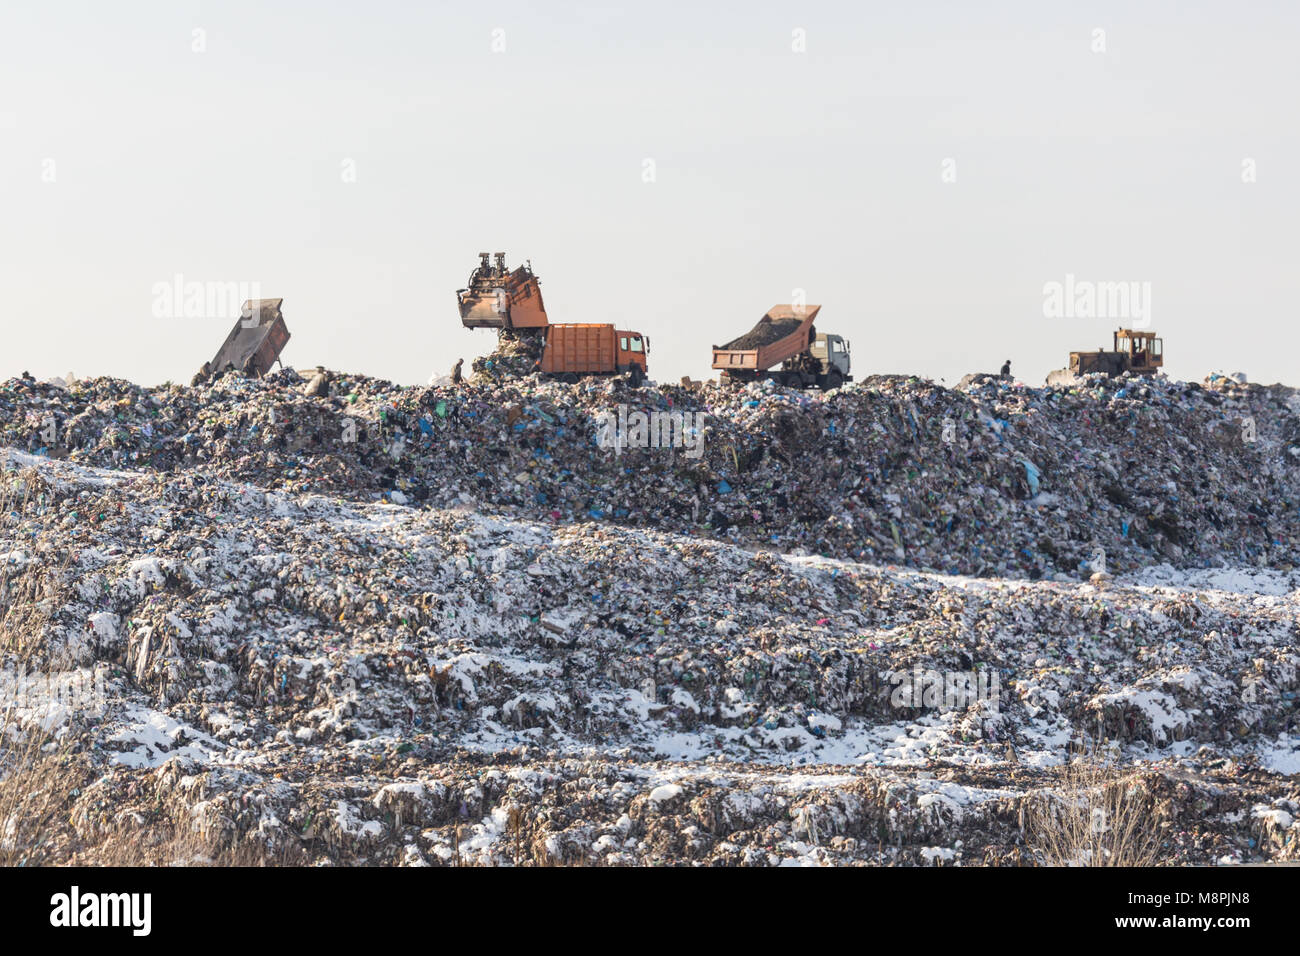 Dump trucks unloading garbage over vast landfill.  Environmental pollution. Outdated method of wasate disposal. - Stock Image